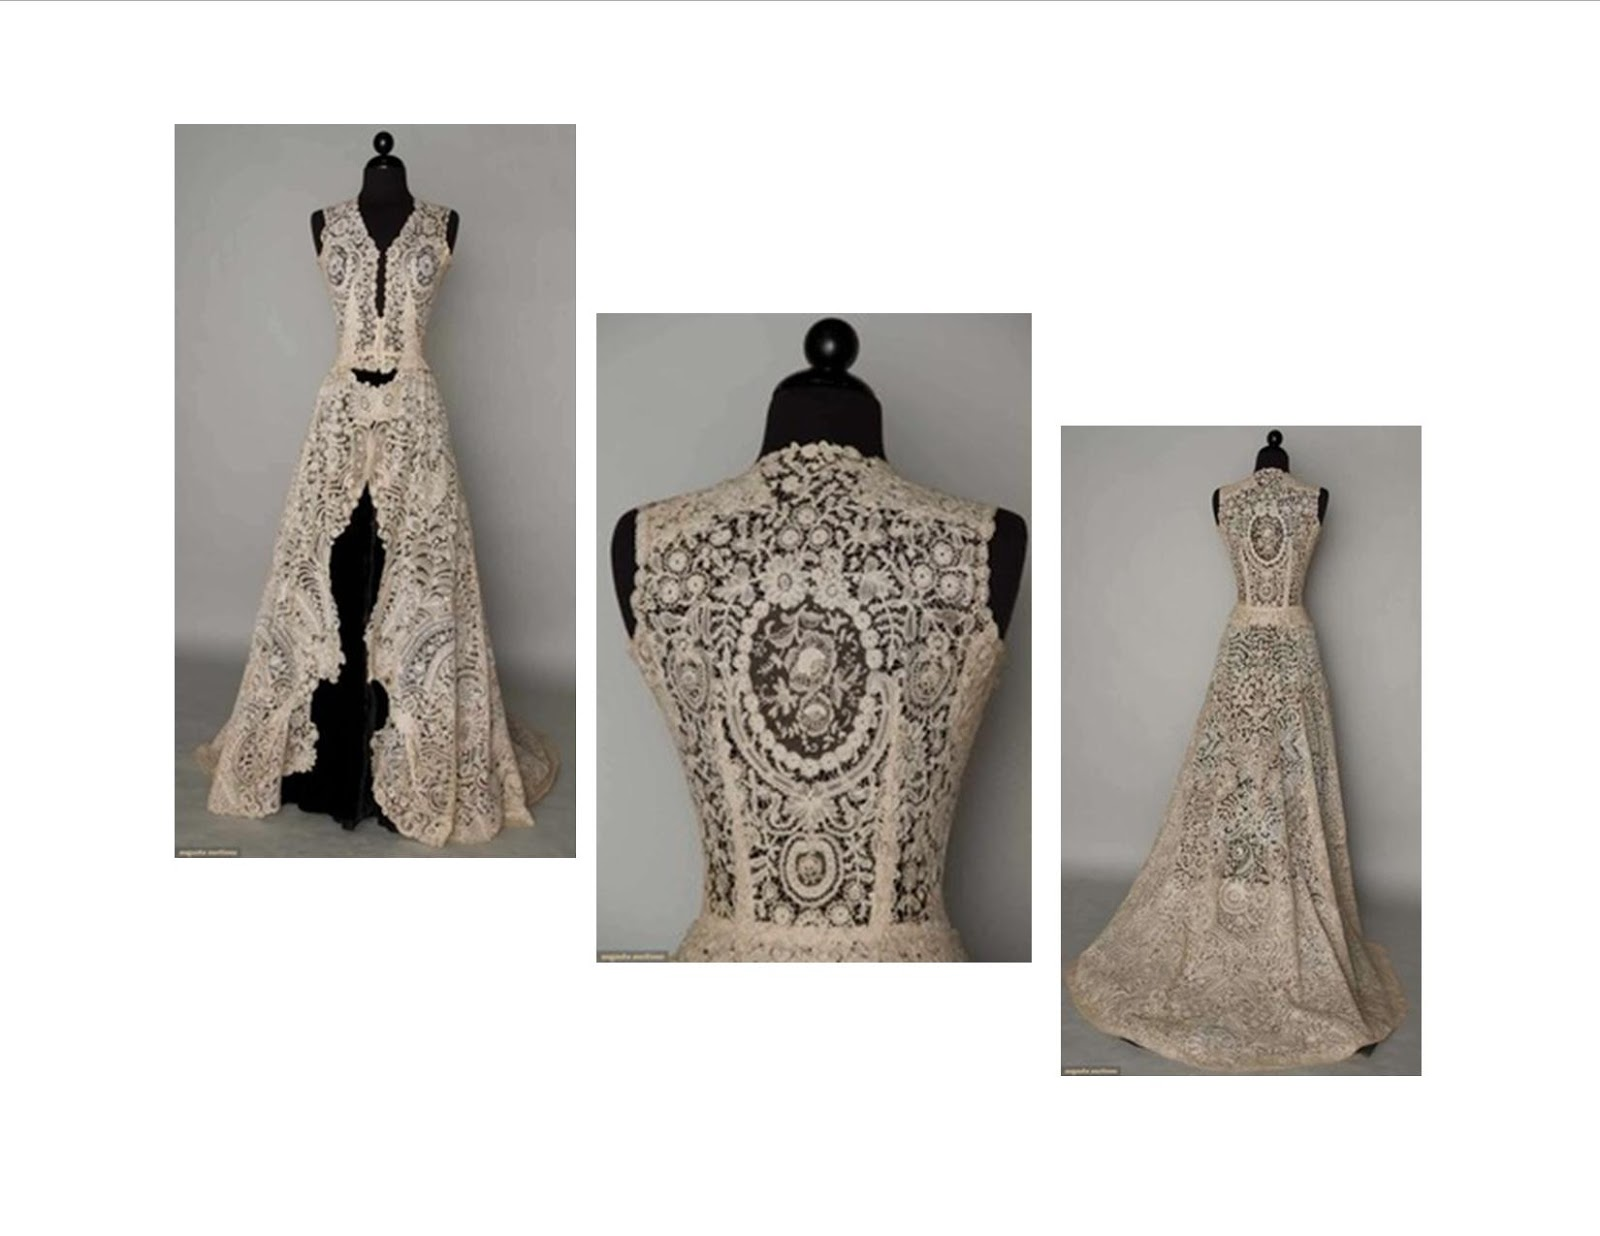 all lace ball gown wedding dresses wedding dress all lace ball gown wedding dresses vintage gown s from Brussels found in